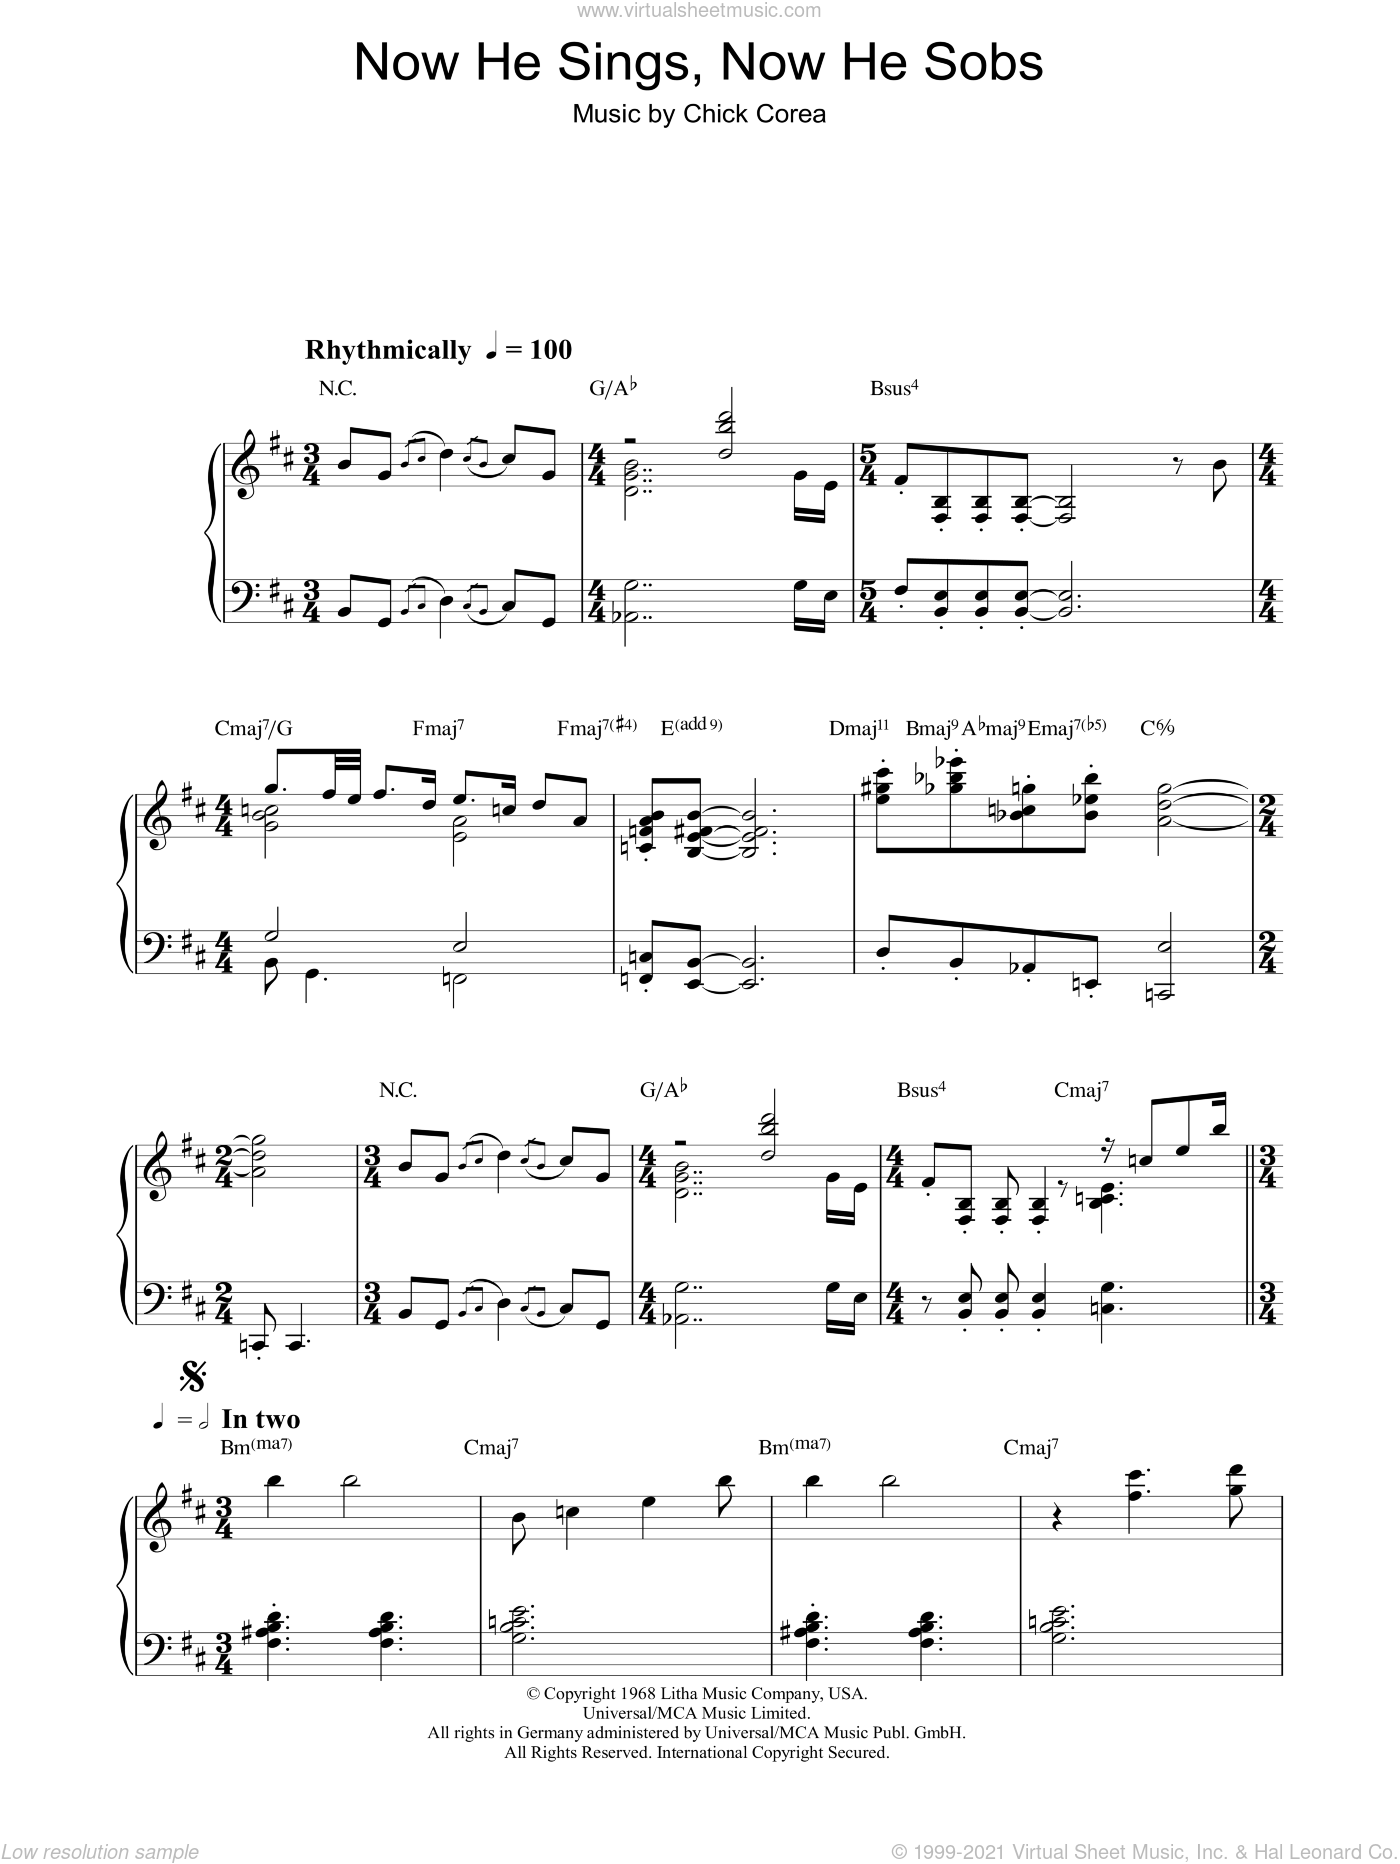 Now He Sings, Now He Sobs sheet music for piano solo by Chick Corea. Score Image Preview.